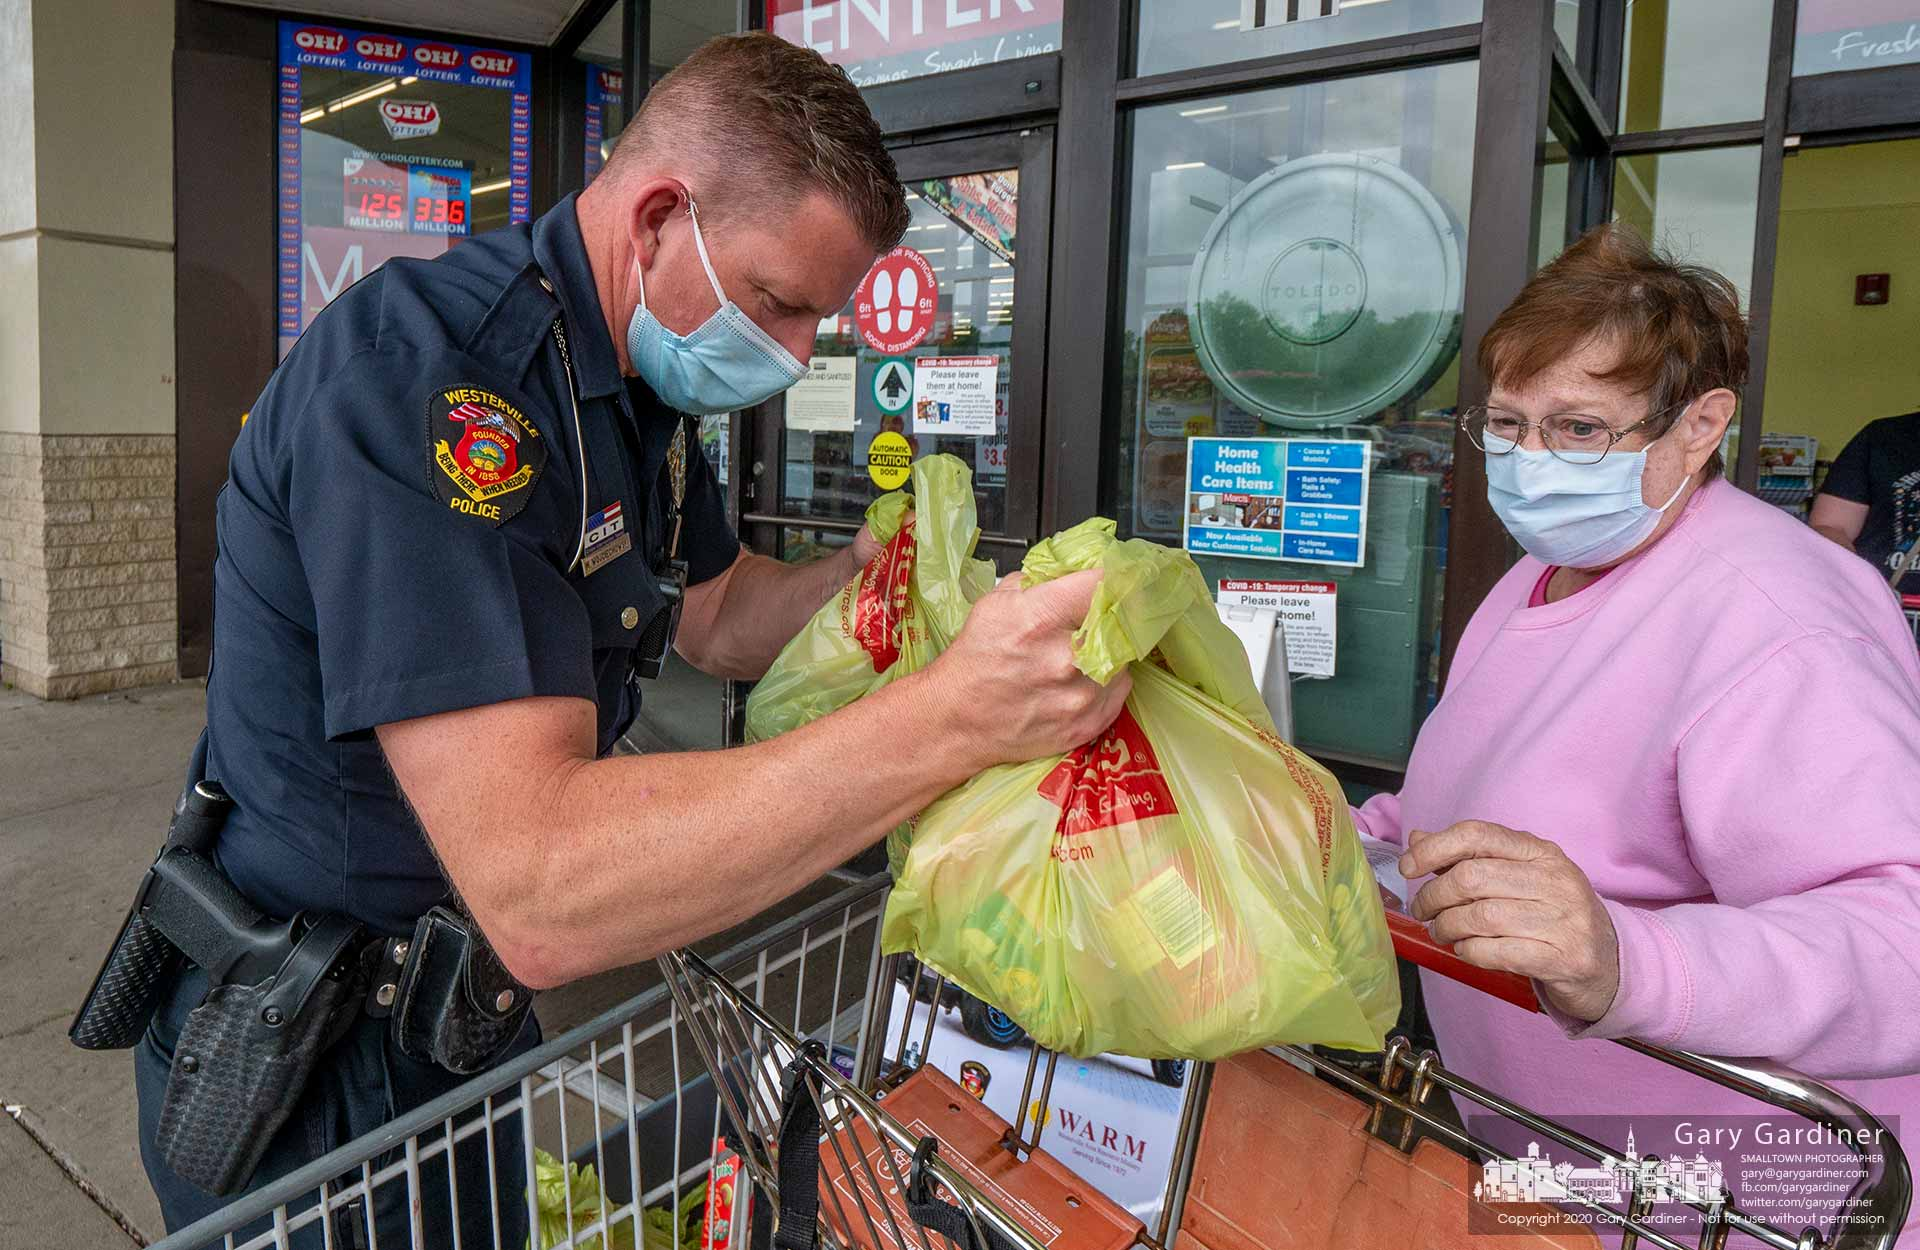 A Westerville police officer helps a woman unload groceries from her cart as a donation for W.A.R.M. during the department's Fill-A-Cruiser food drive. My Final Photo for May 28, 2020.